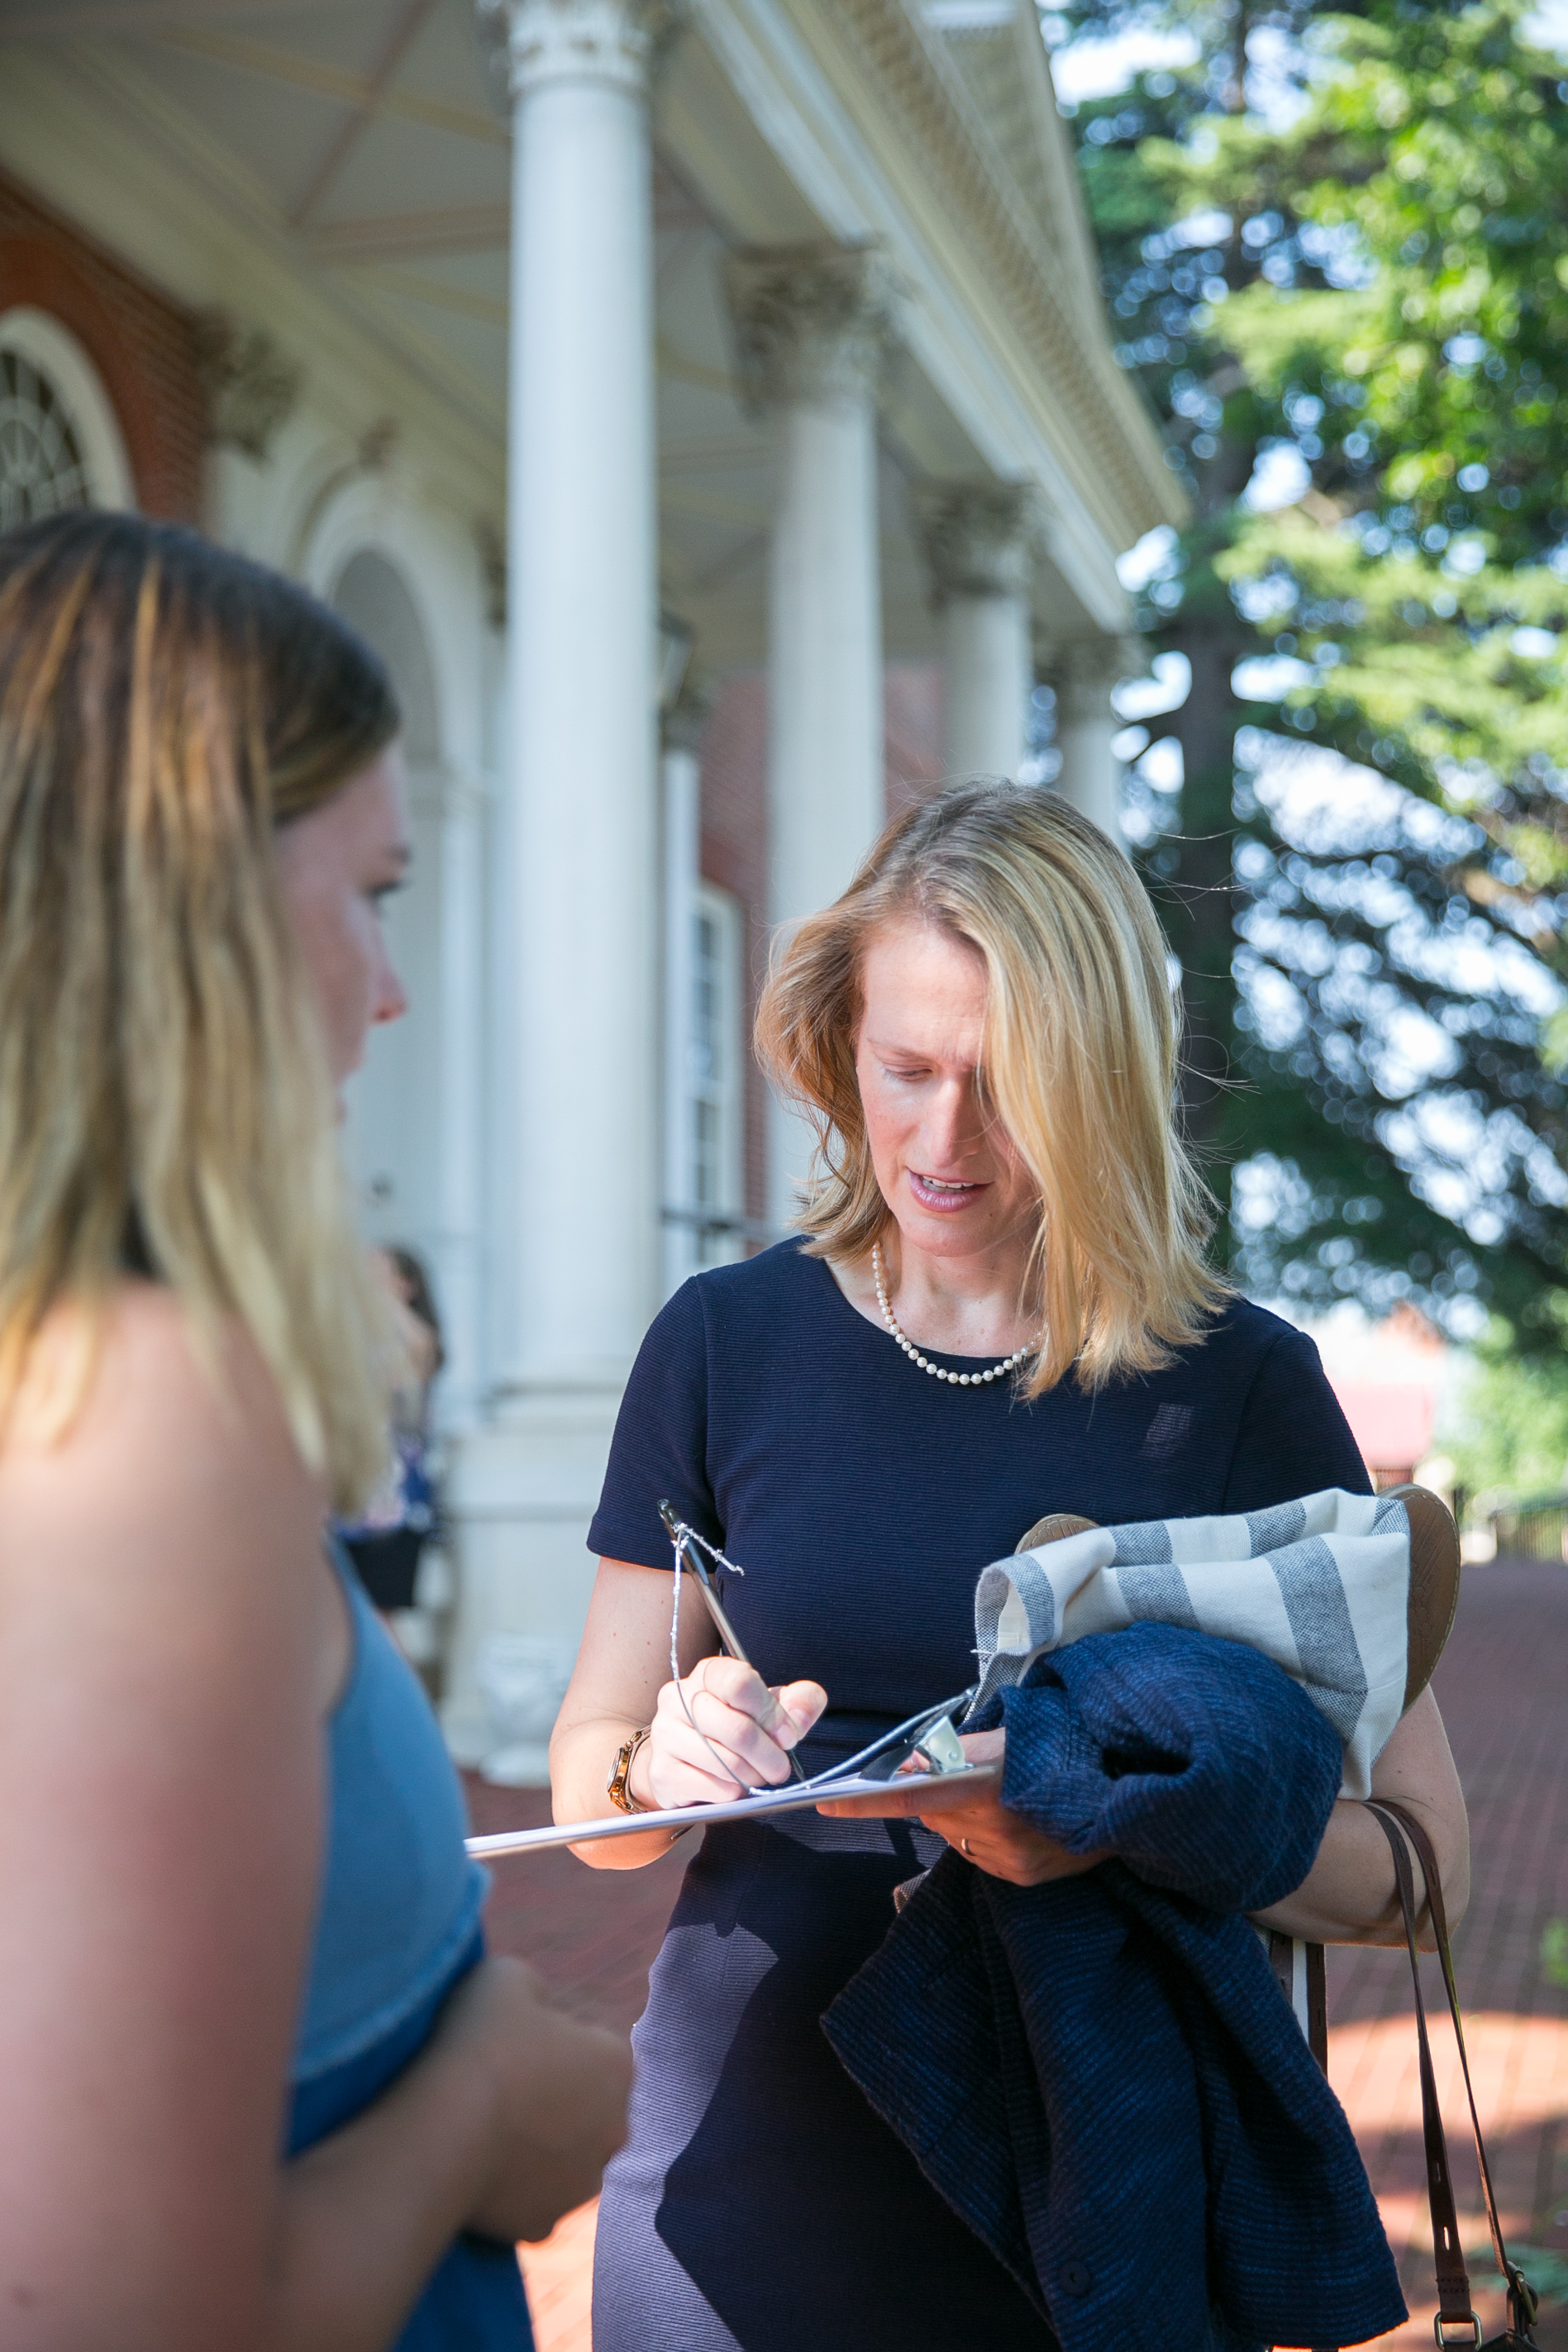 Del. Brooke Lierman signing into the event after canvassing for another friend running for office  Photo: Raba Abro